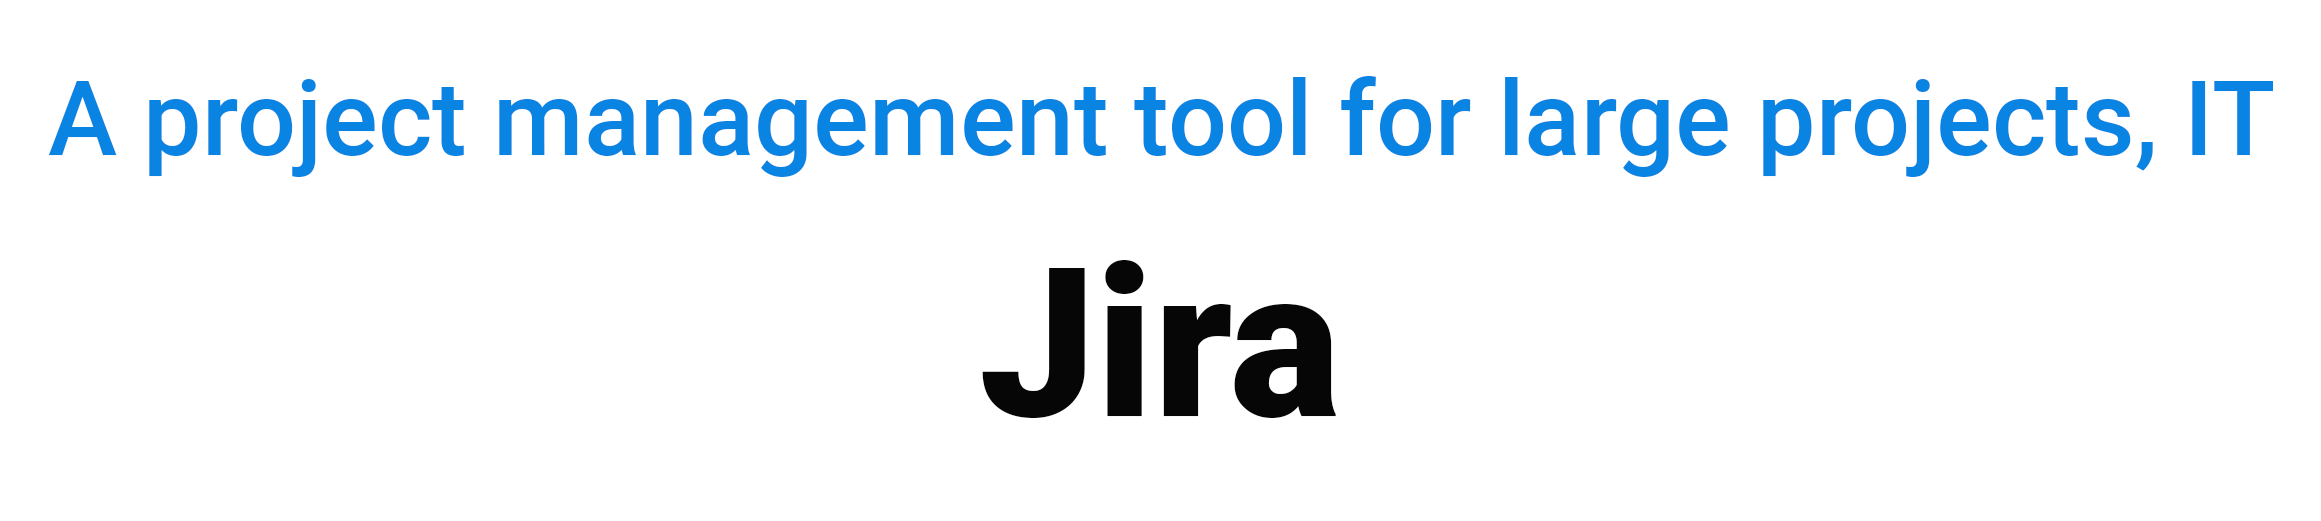 A project management tool for large projects, IT JIRA virtual team managing tools